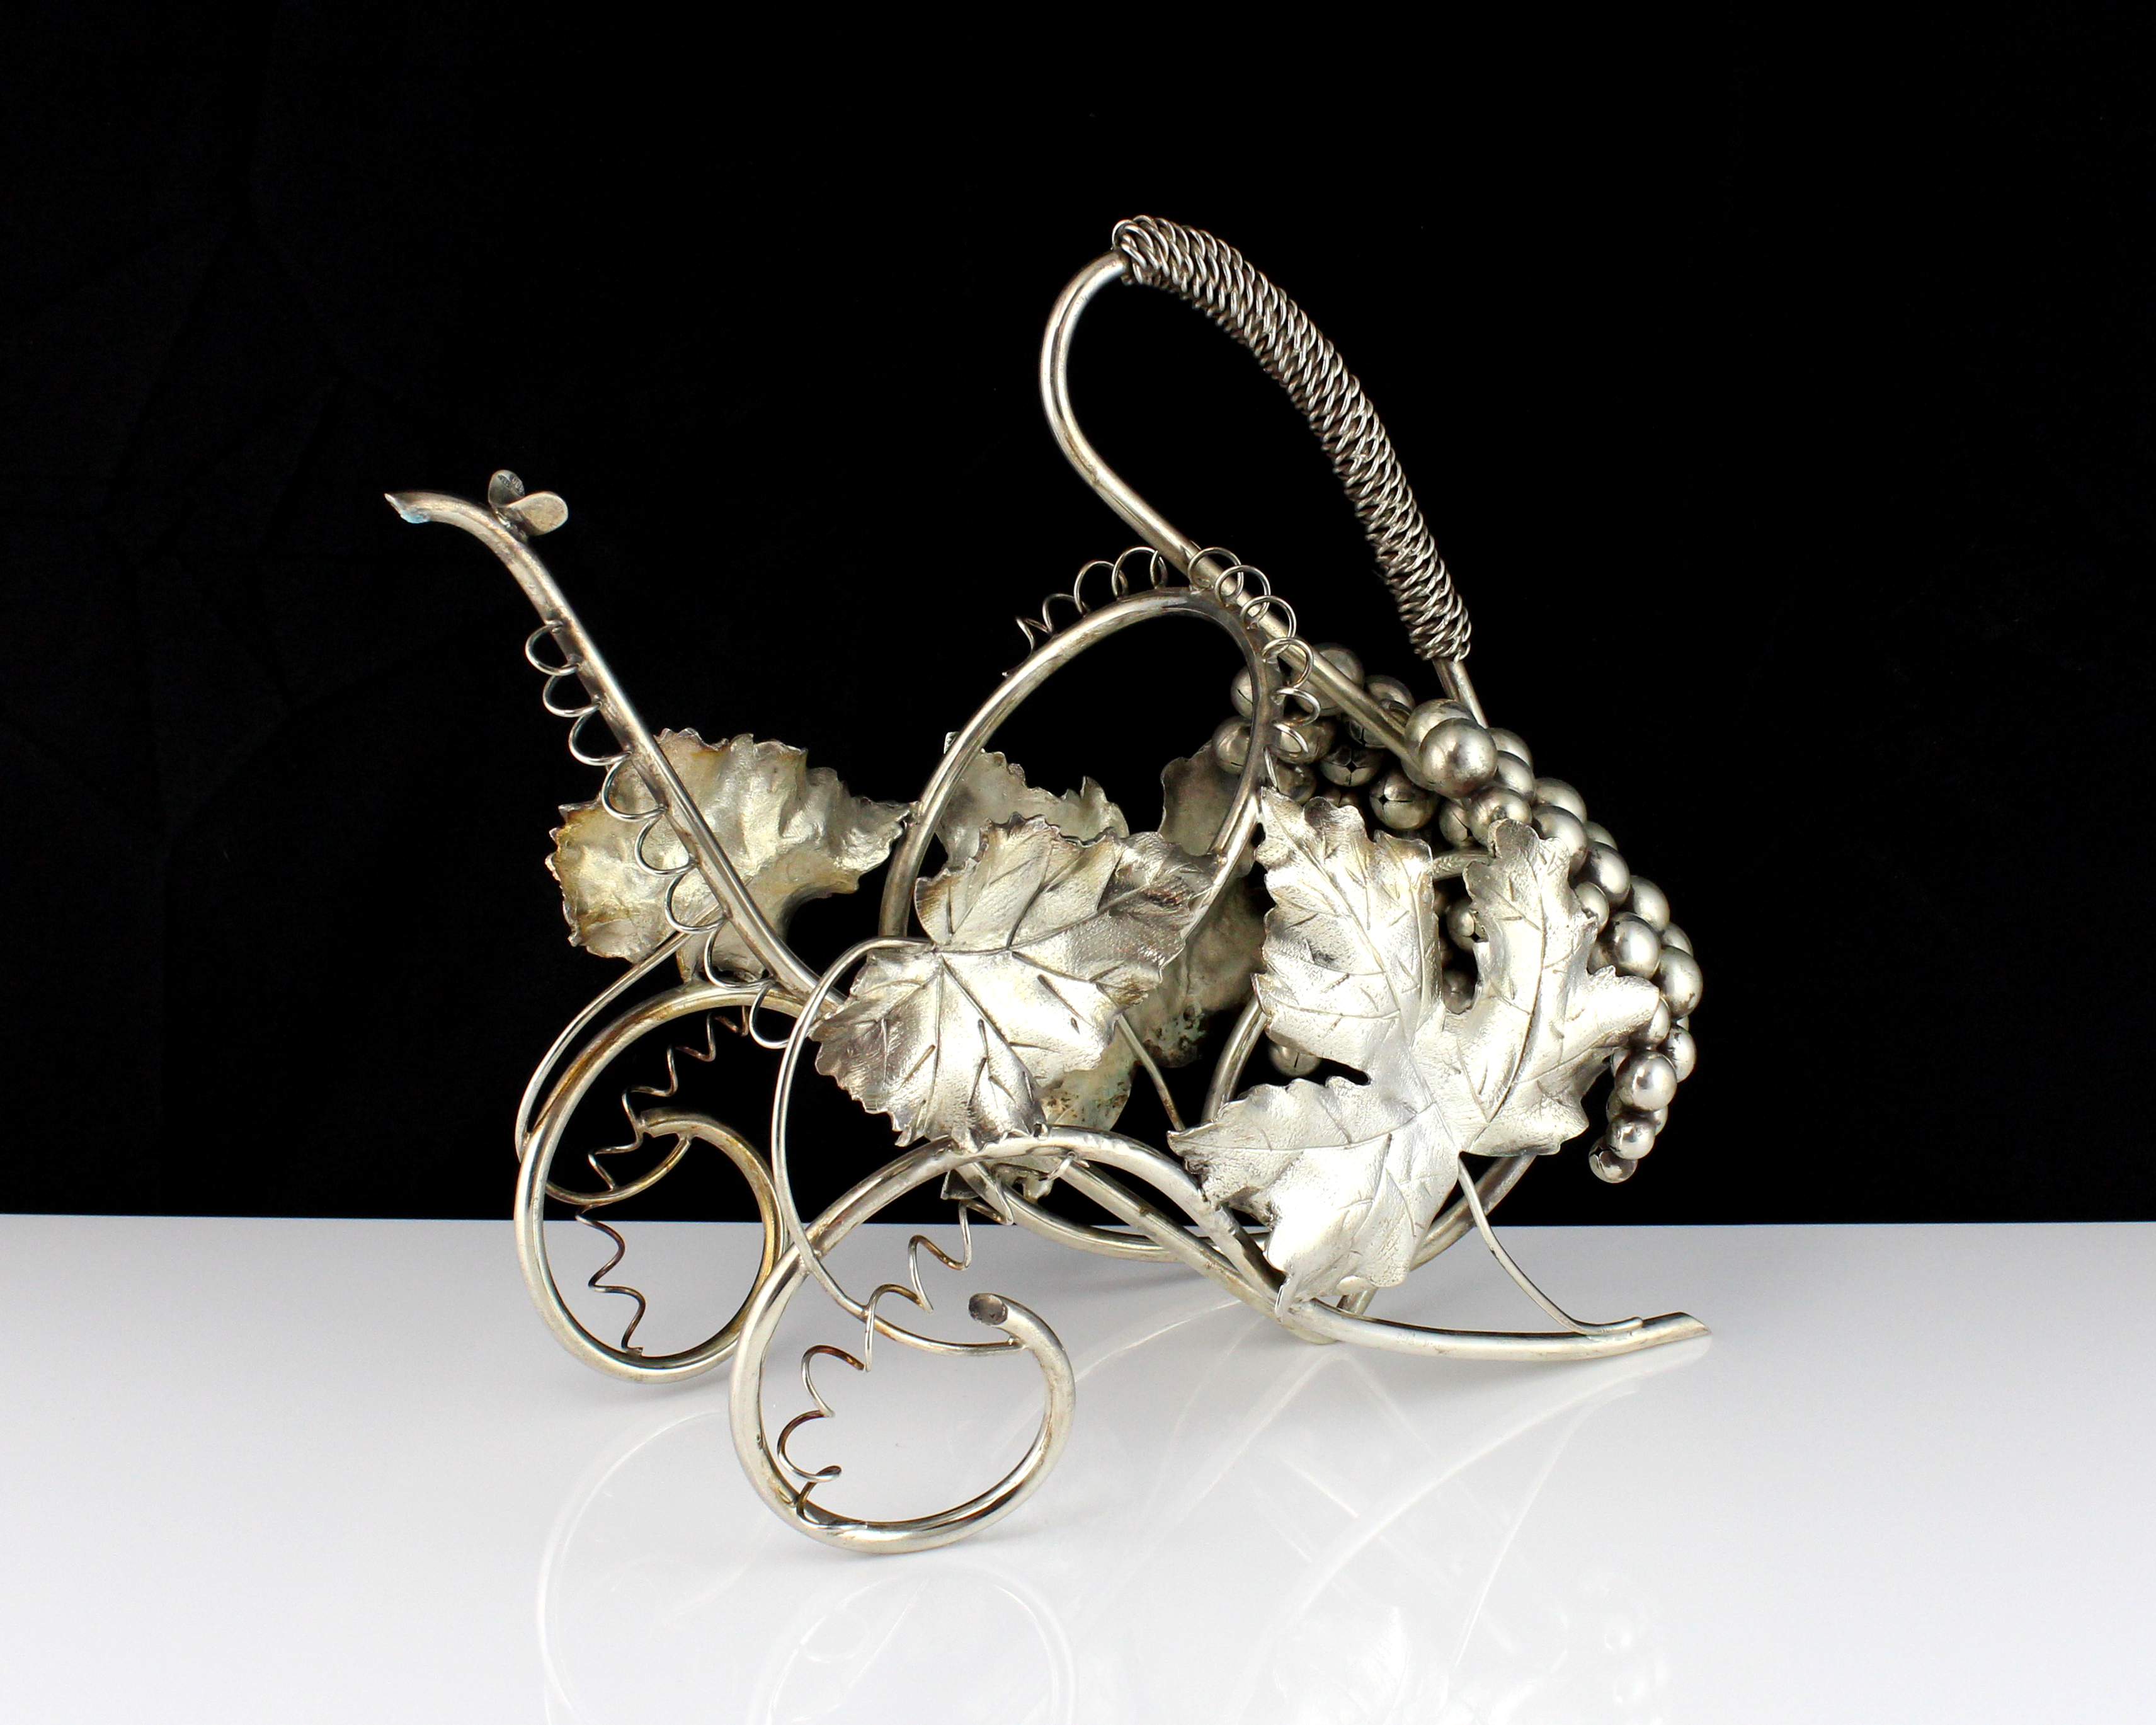 A vintage Italian 800 Silver wine bottle holder circa 1960. The wirework carriage body with